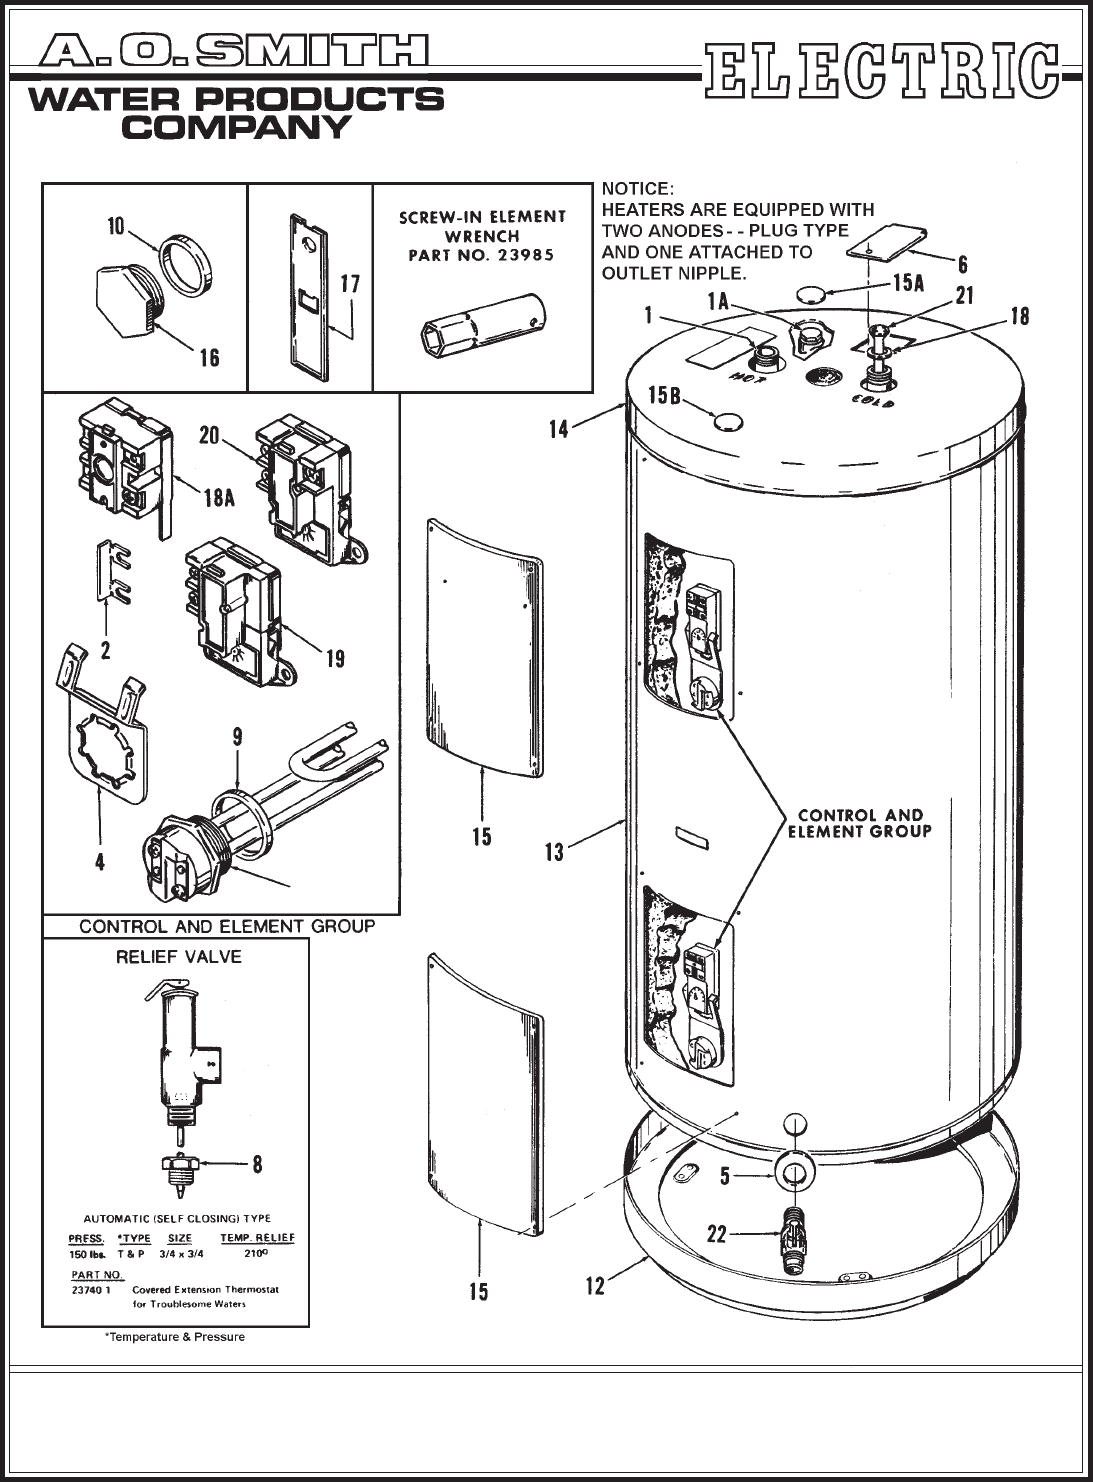 f5f993a3 6fc2 4973 8adf d4b9bf6f7db4 bg1 a o smith water heater pec te 40 user guide manualsonline com ao smith water heater wiring diagram at nearapp.co